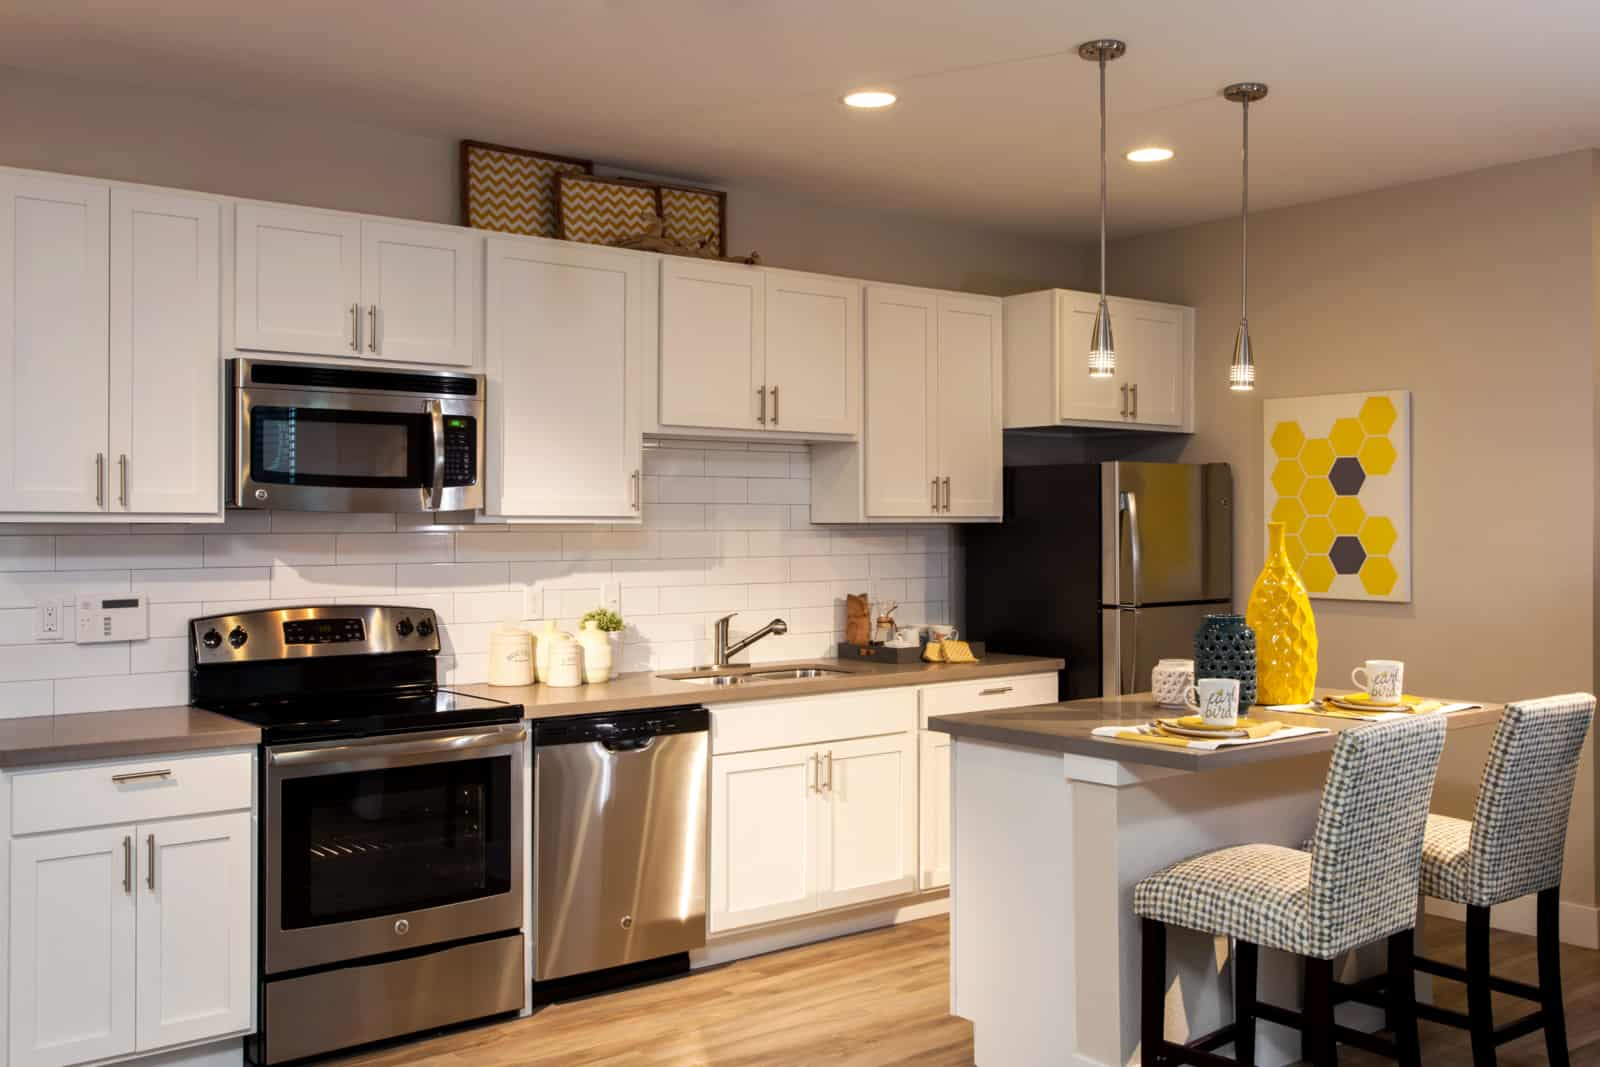 Open kitchen with island dining, stainless steel appliances and white cabinets.